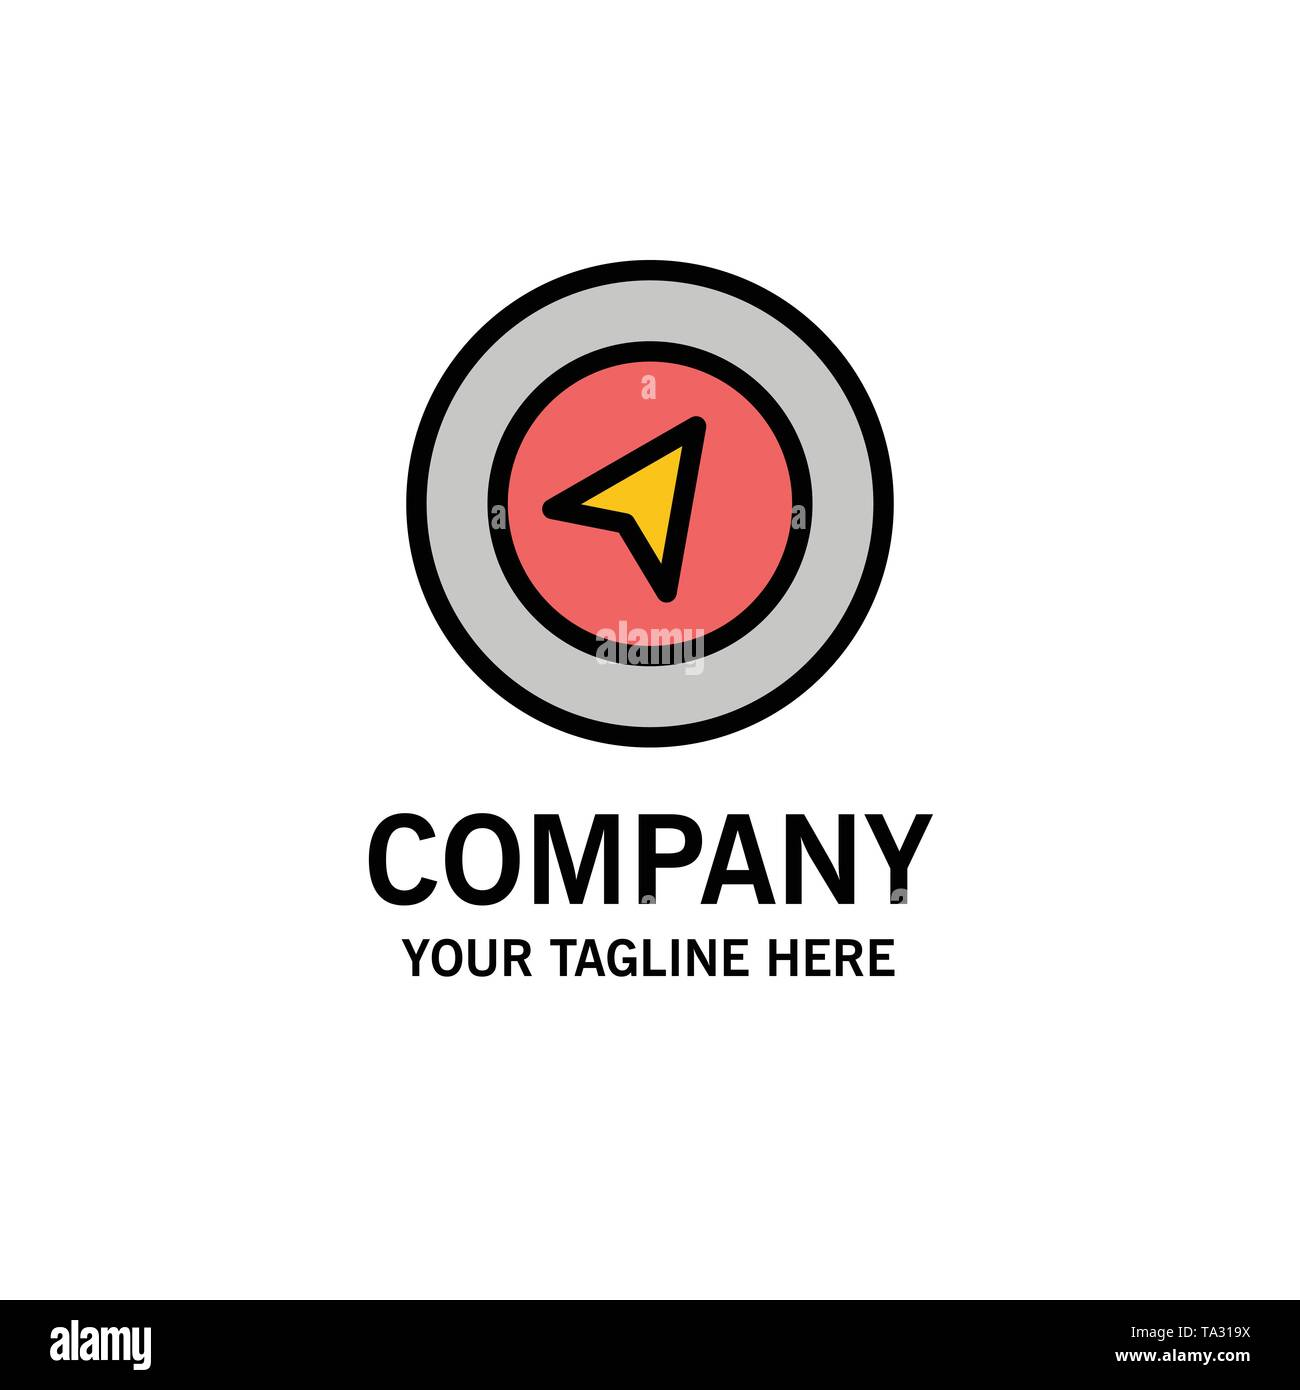 Map, Navigation, Location Business Logo Template. Flat Color - Stock Image